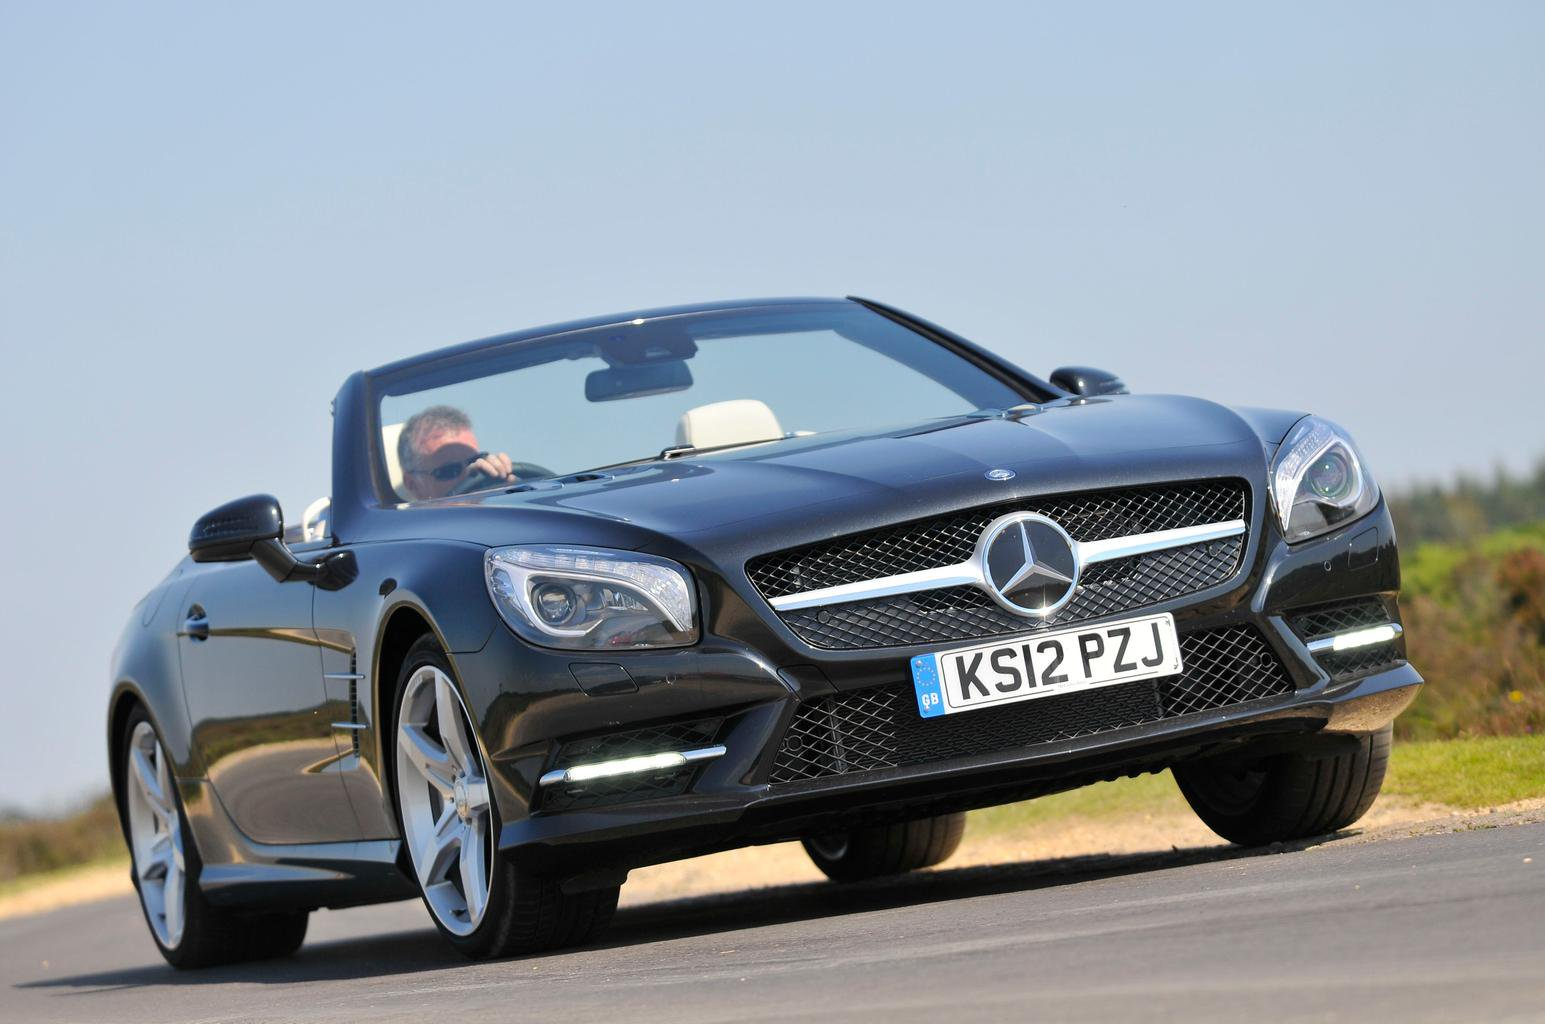 Used Mercedes SL vs BMW 6 Series Convertible vs Porsche 911 Cabriolet